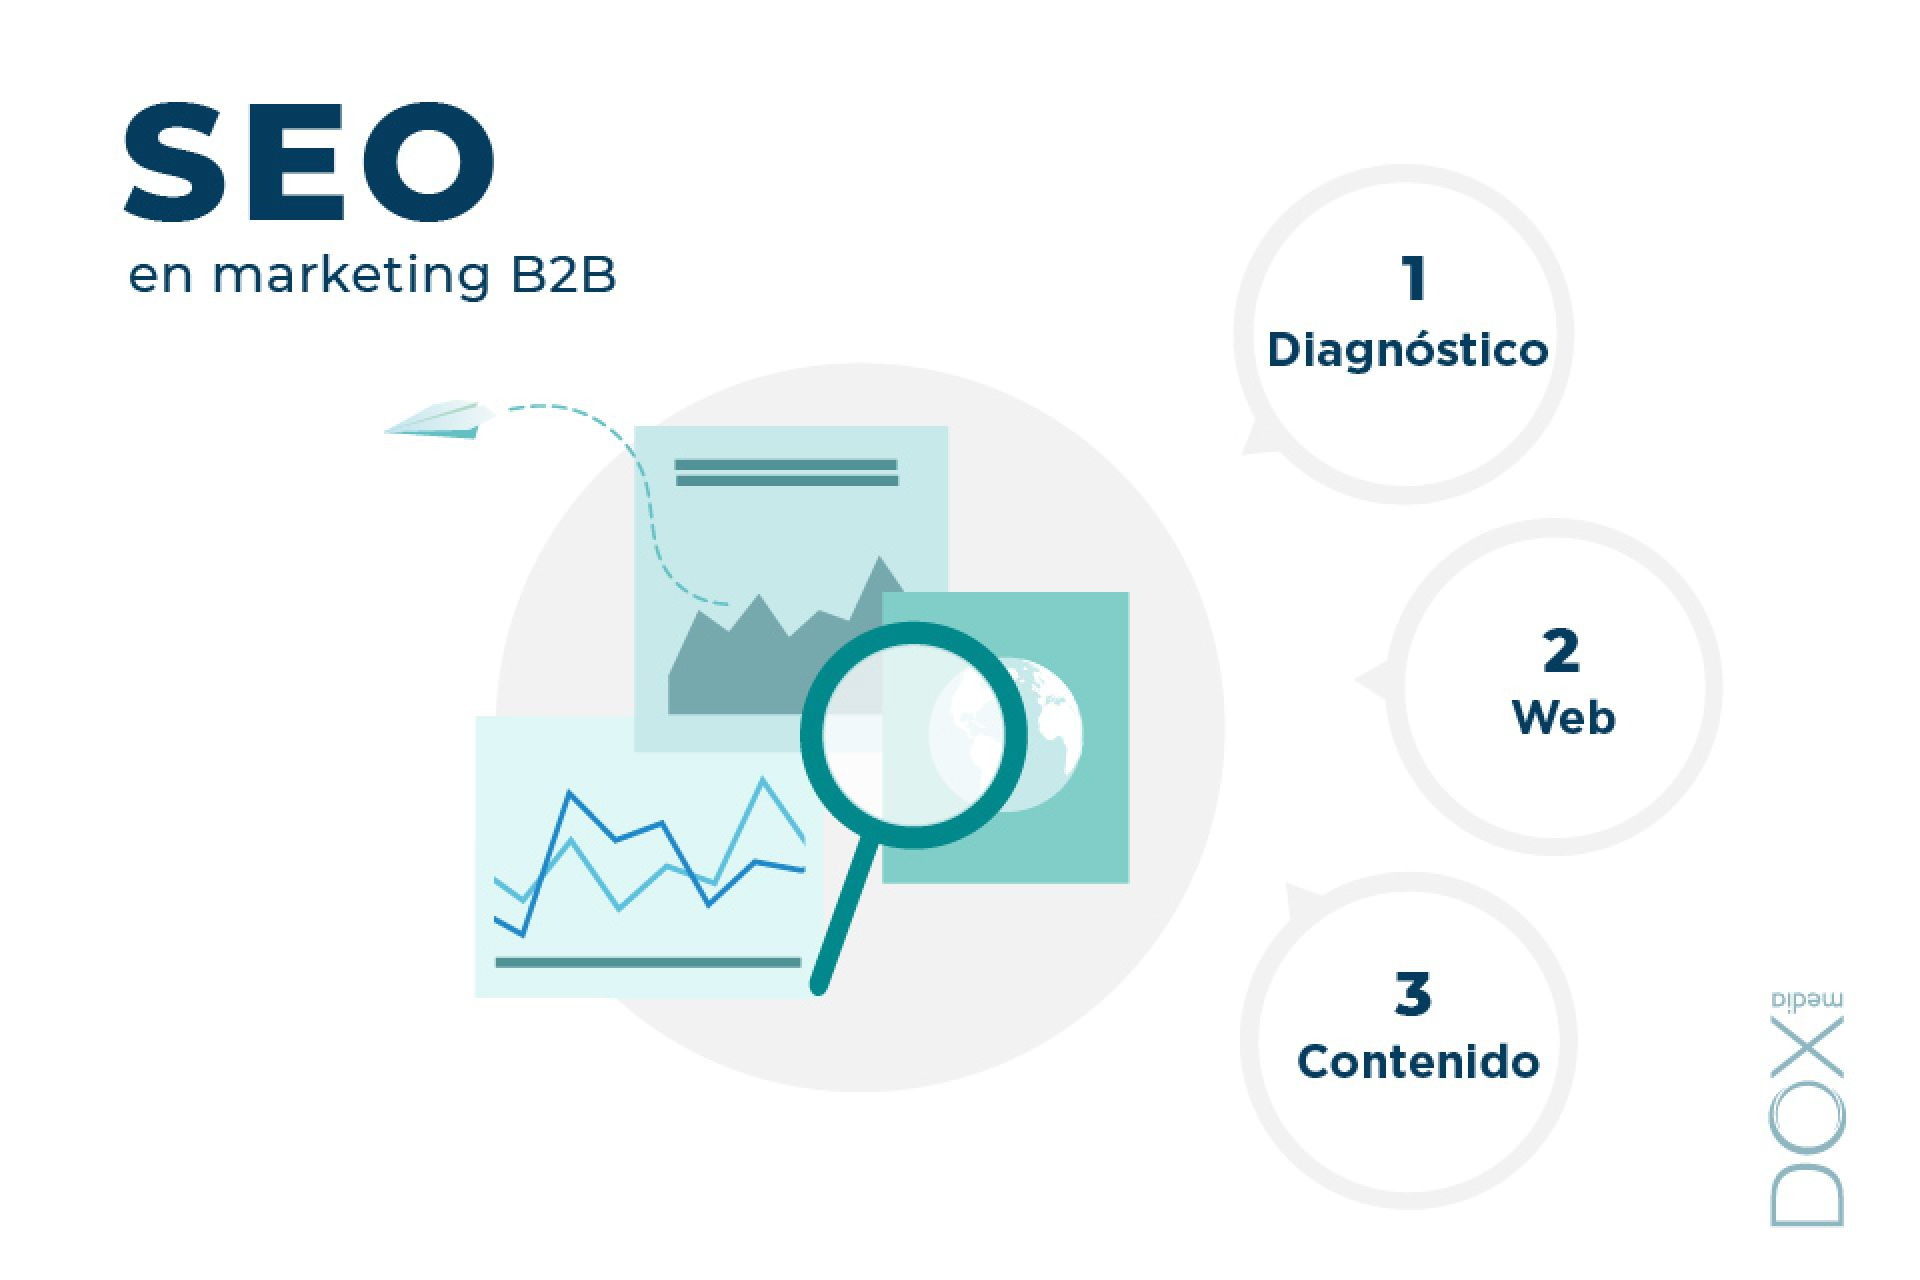 SEO in B2B marketing